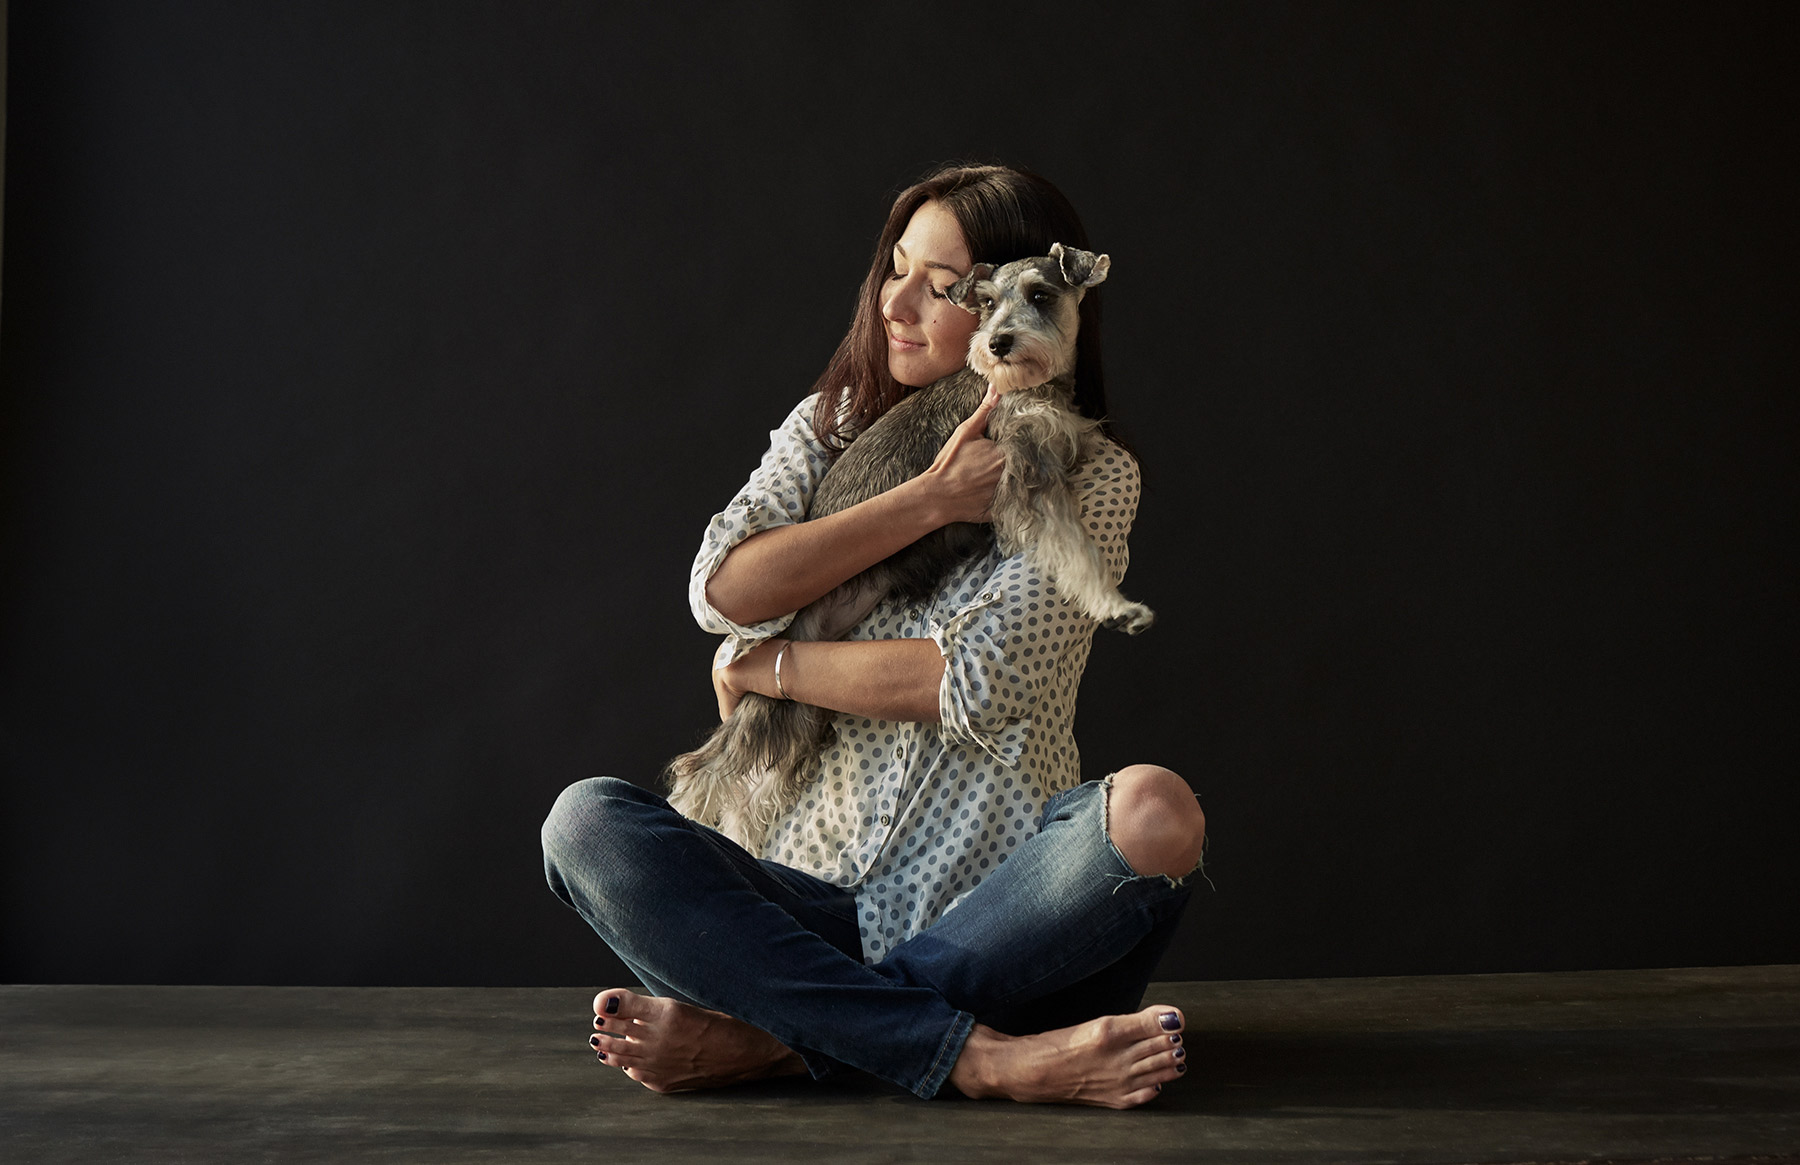 A-studio-portrait-of-a-woman-holding-a-Schnauzer-against-a-black-background